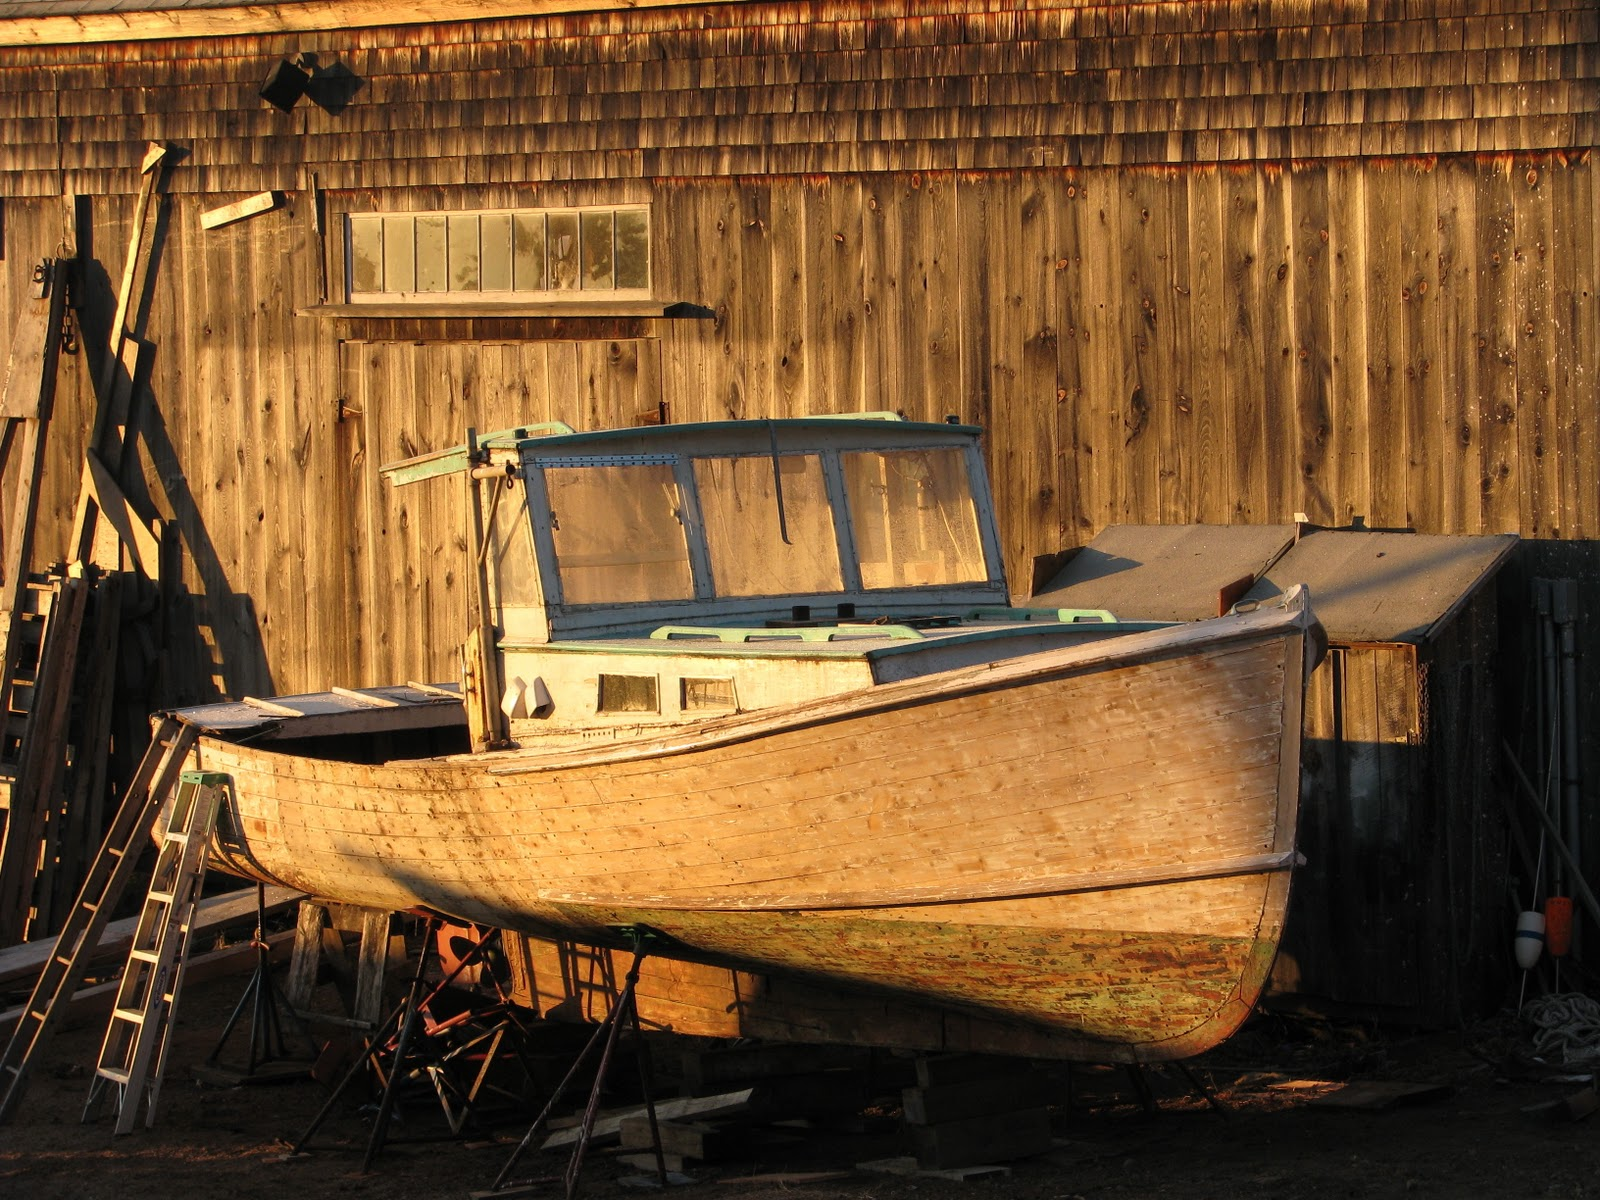 Real Wooden lobster boat plans | Boaths